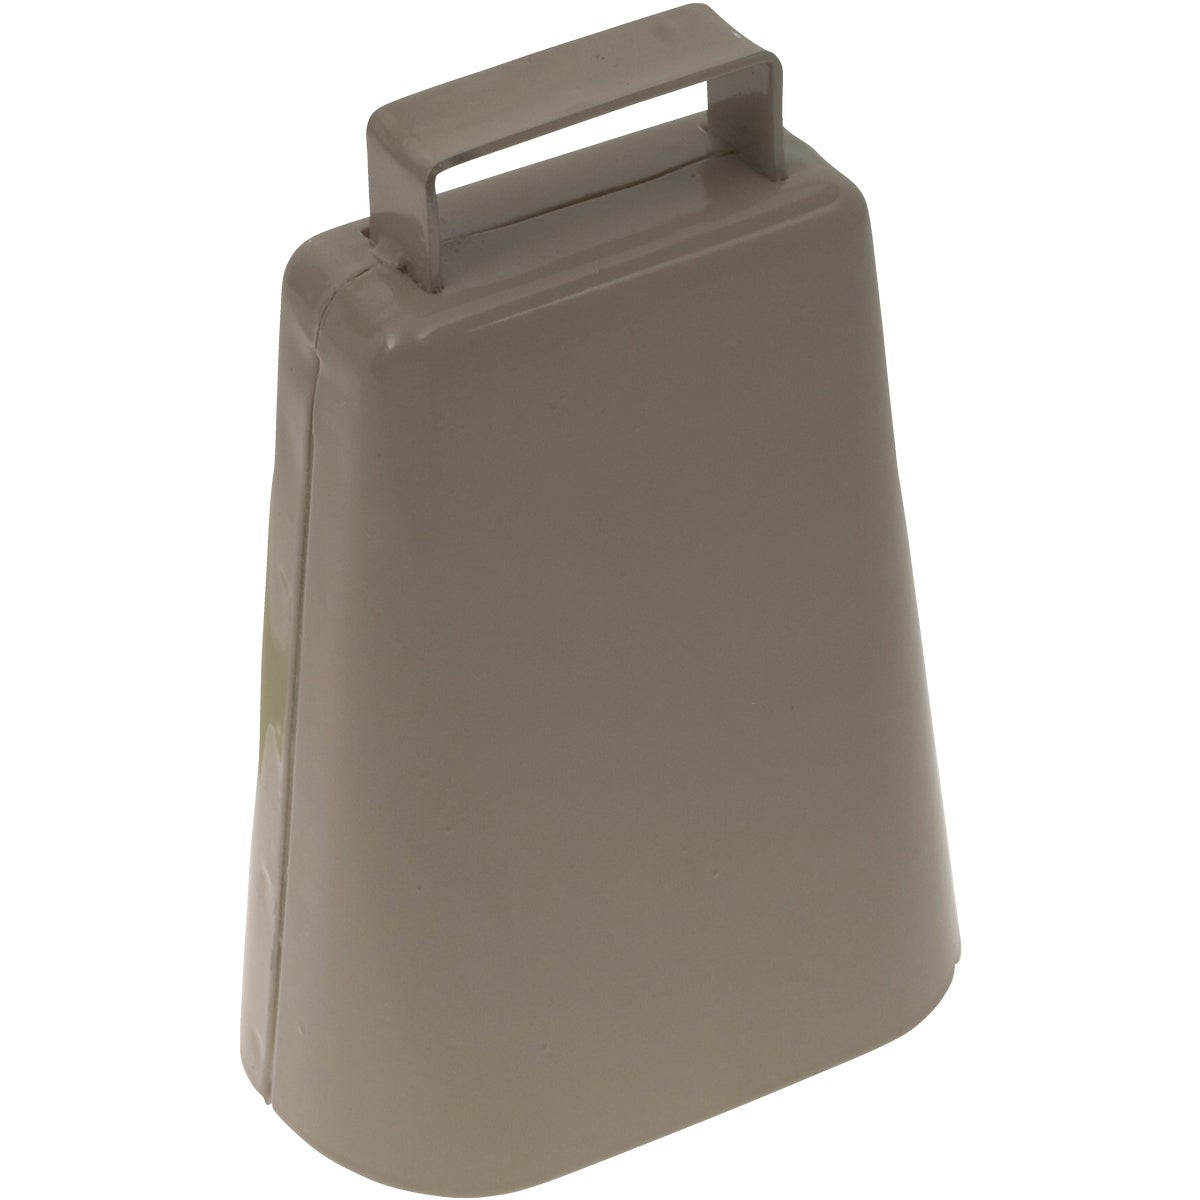 "4-7/8"" 2K COWBELL - S90070200-CB900702 by Speeco Farmex"